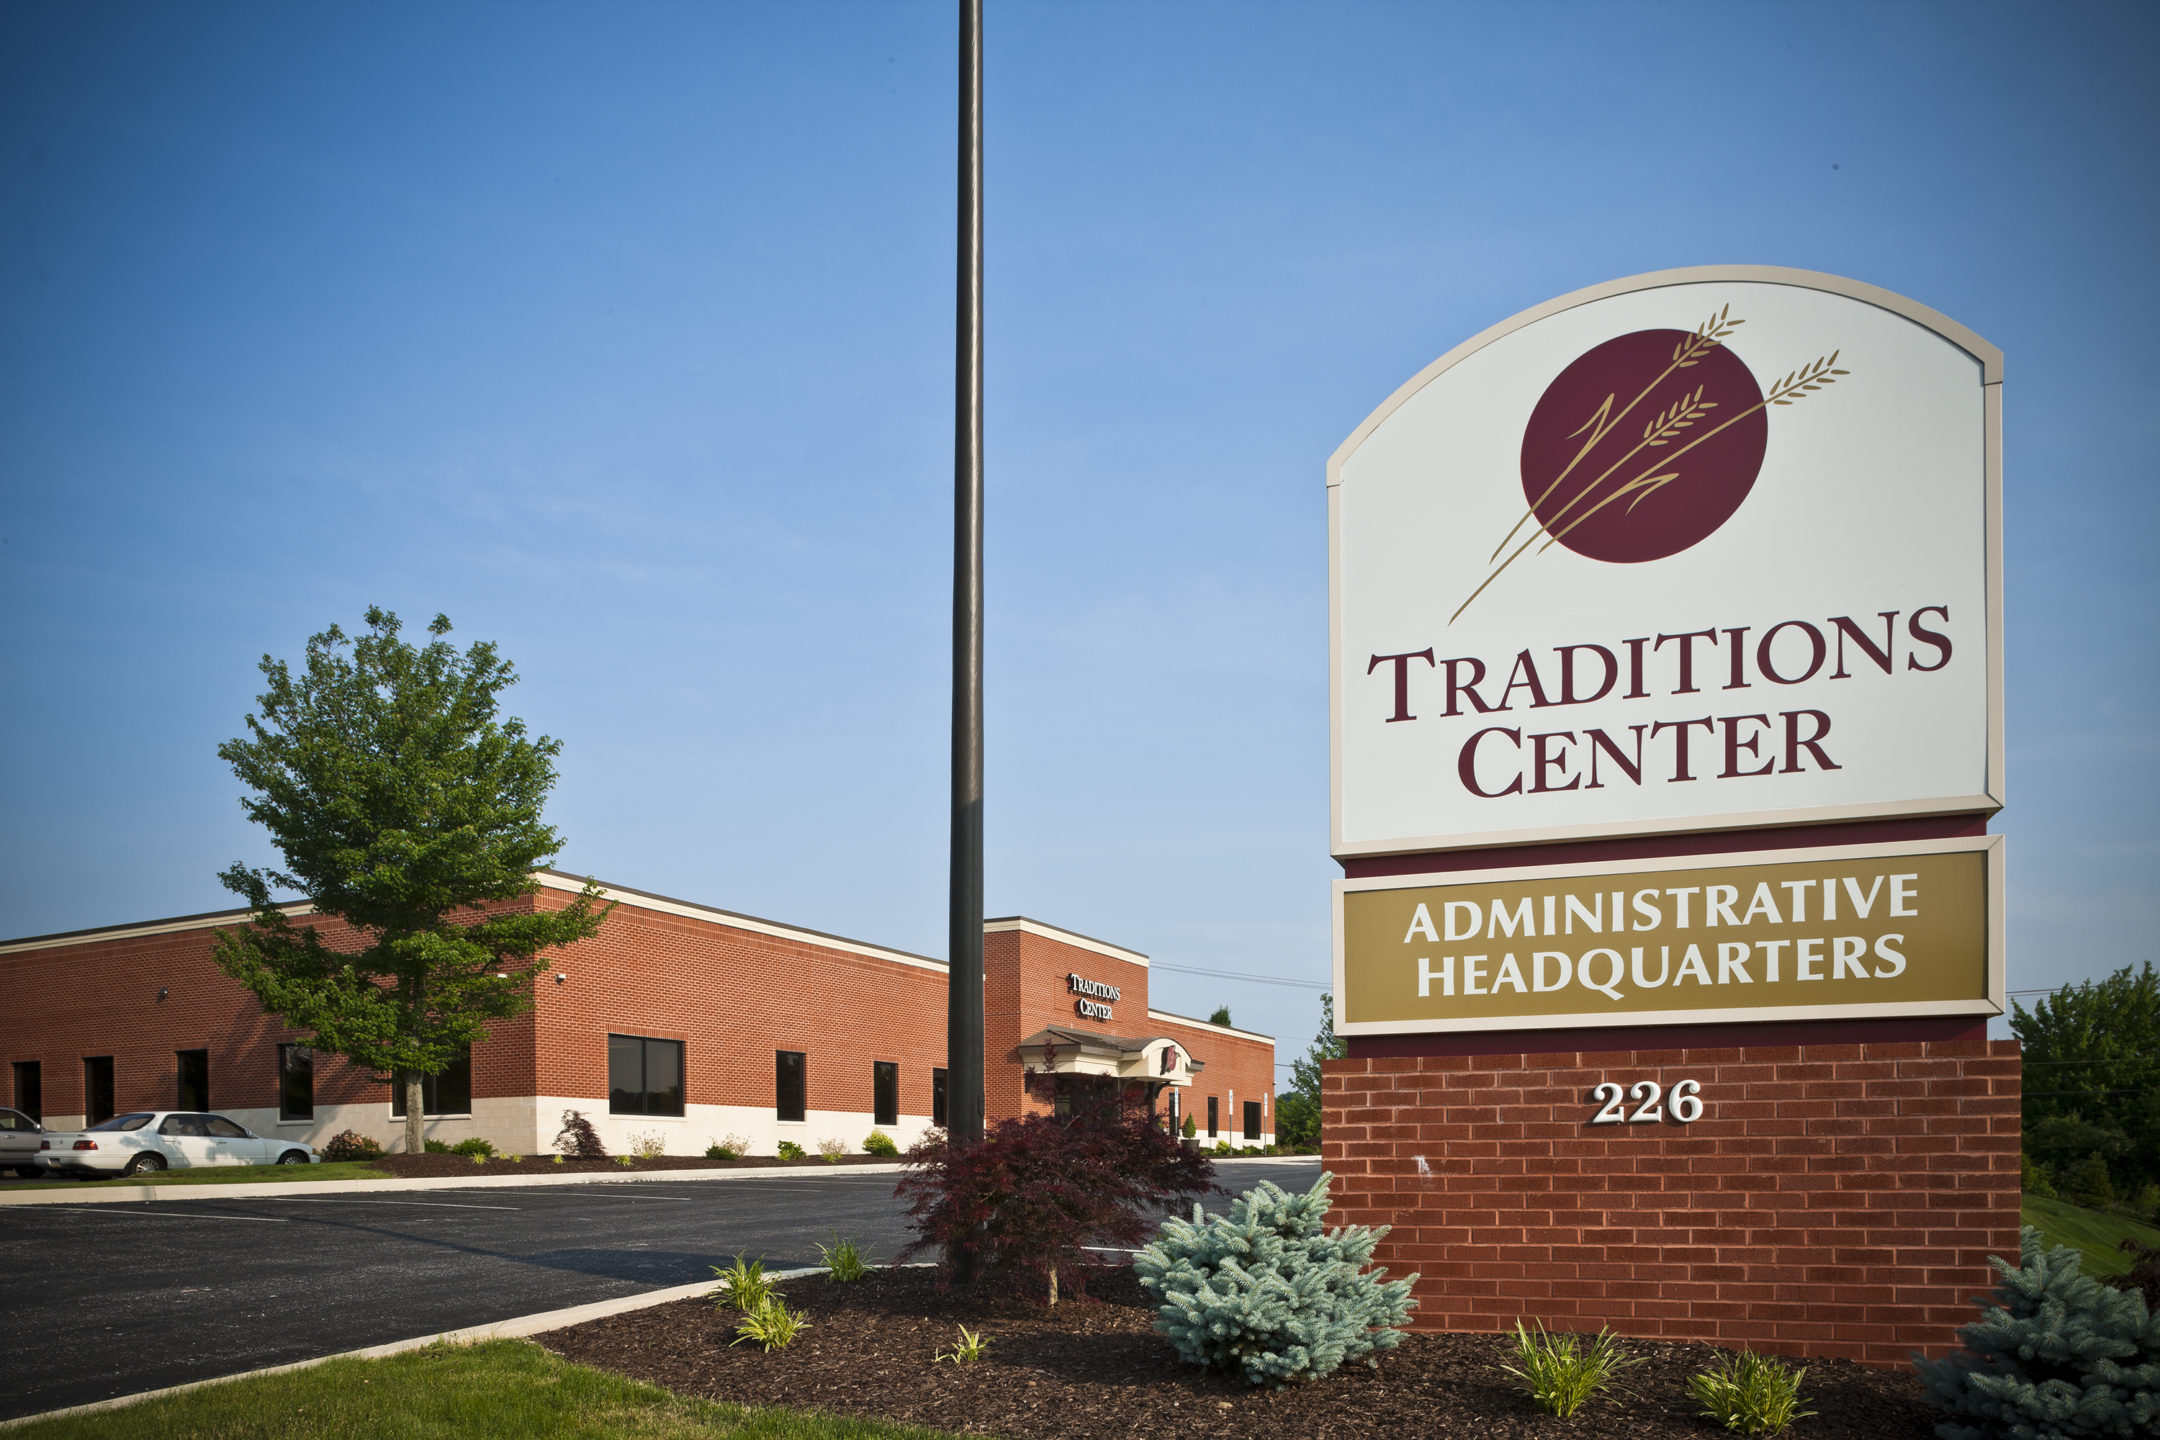 Traditions Center Administrative Headquarters